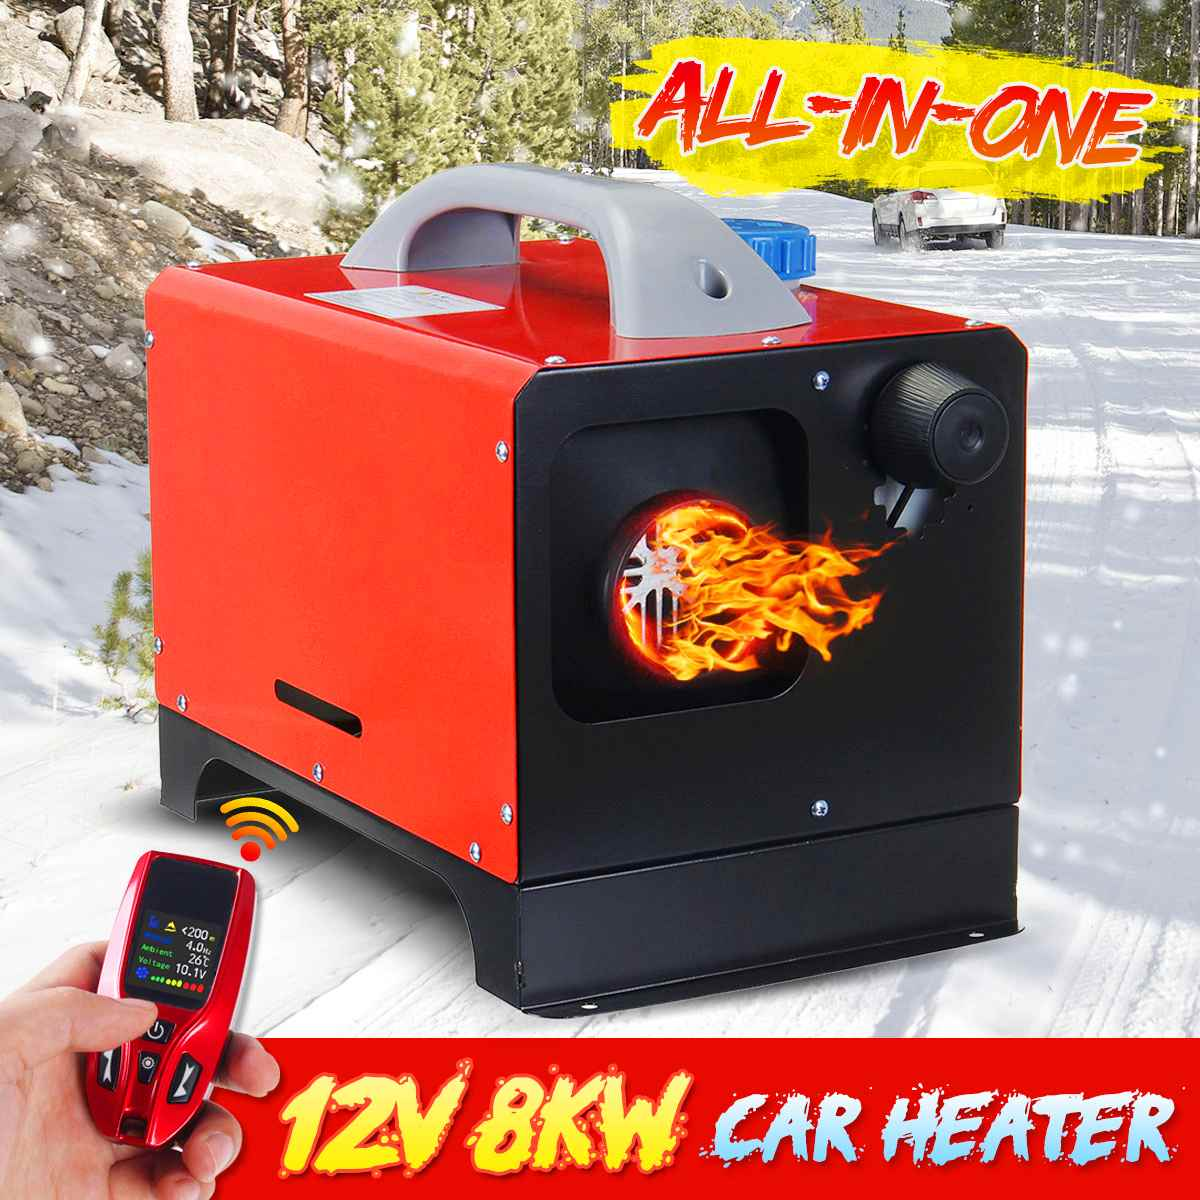 Image 3 - All In One 8000W Mini Diesel Air Heater 8KW 12V One Hole Car Heater For Trucks Motor Homes LCD /Button Remote New Arrival 2019Heating & Fans   -